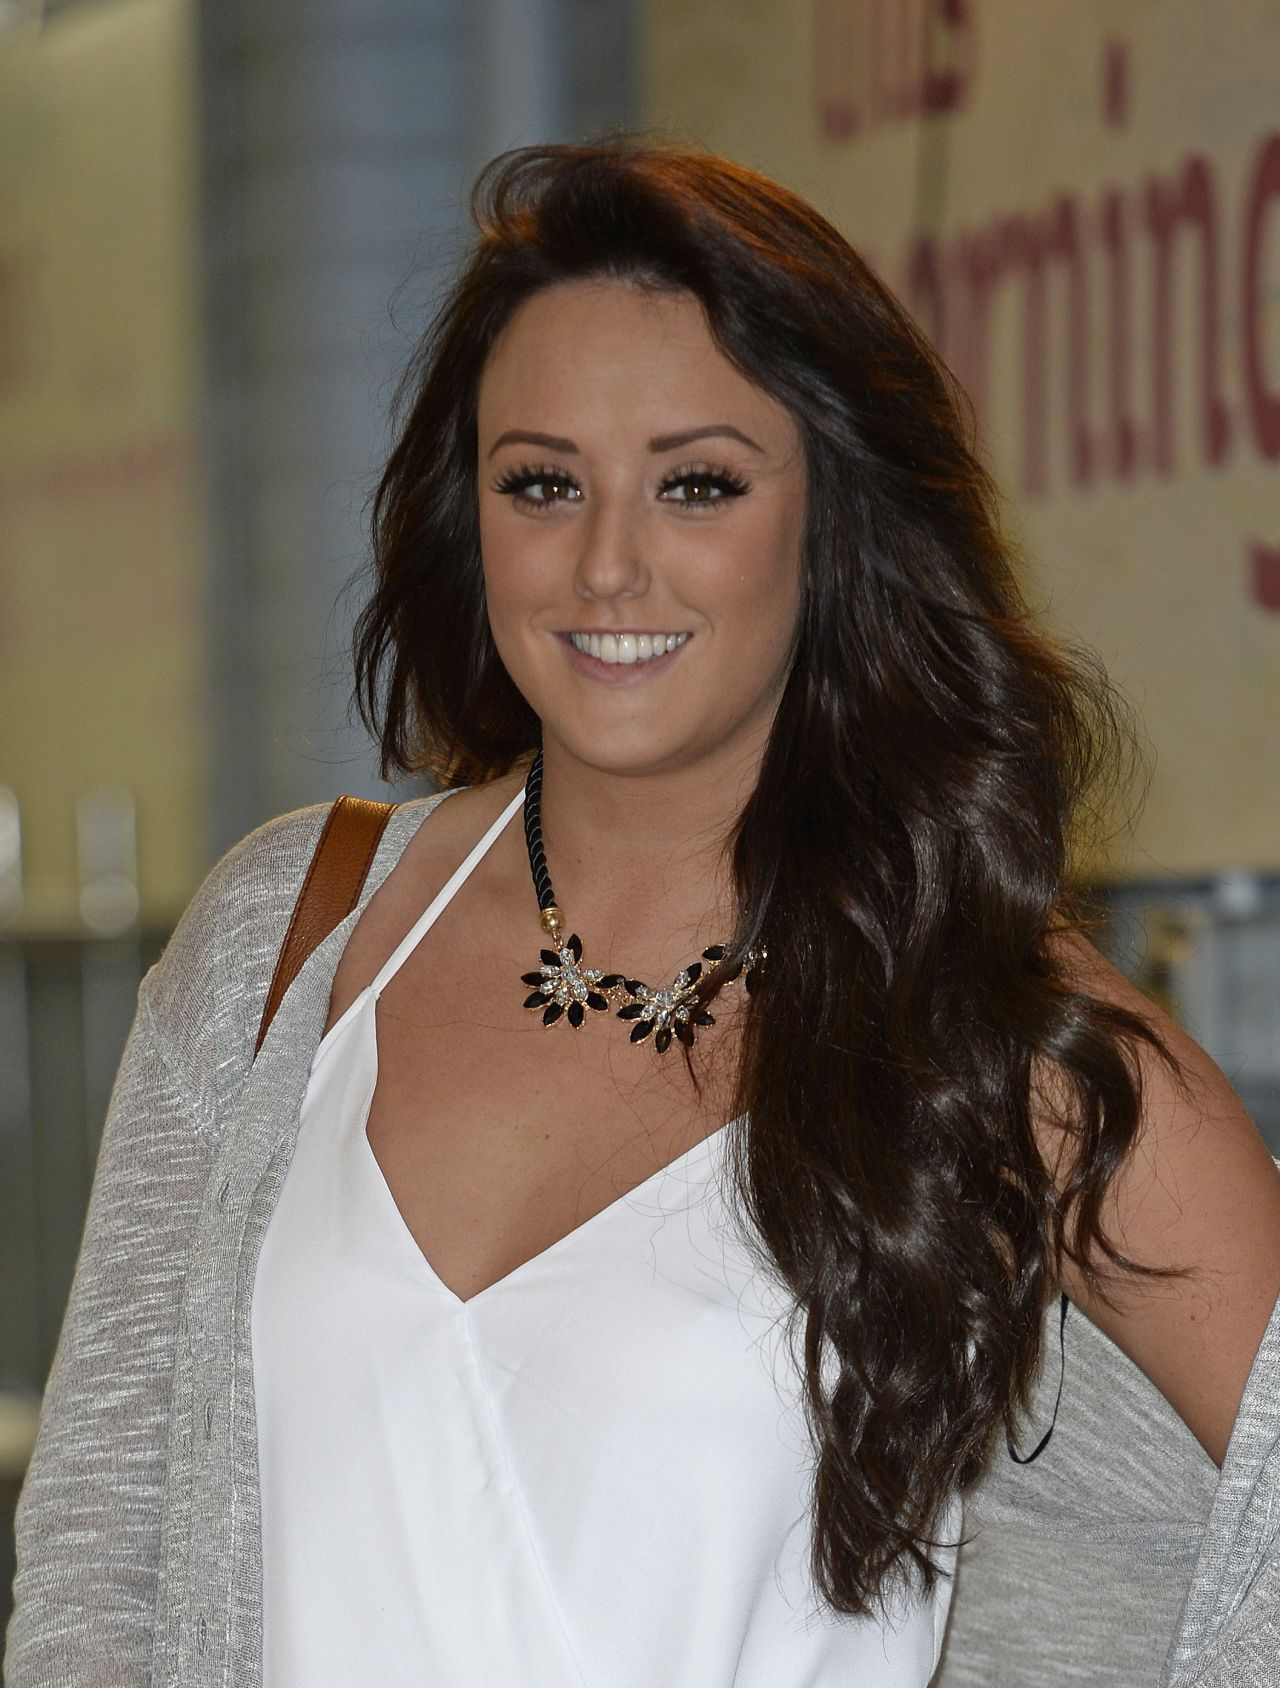 Charlotte Crosby at the London Studios - January 7 2014